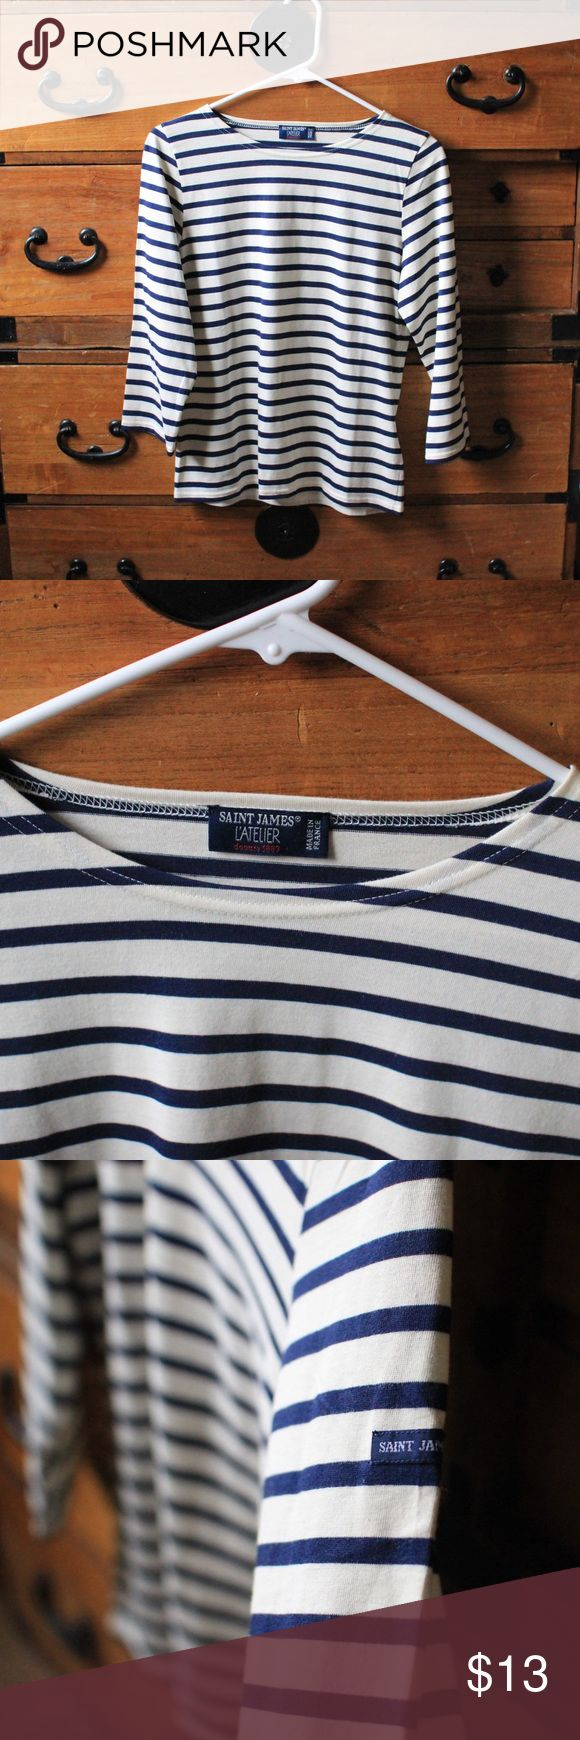 Saint James L'atelier Nautical 3/4 sleeve Top Saint James, 3/4 sleeve striped top, loose fitting, cream with navy stripes, never been worn, nothing wrong with it, wide neck Saint James Tops Tees - Short Sleeve